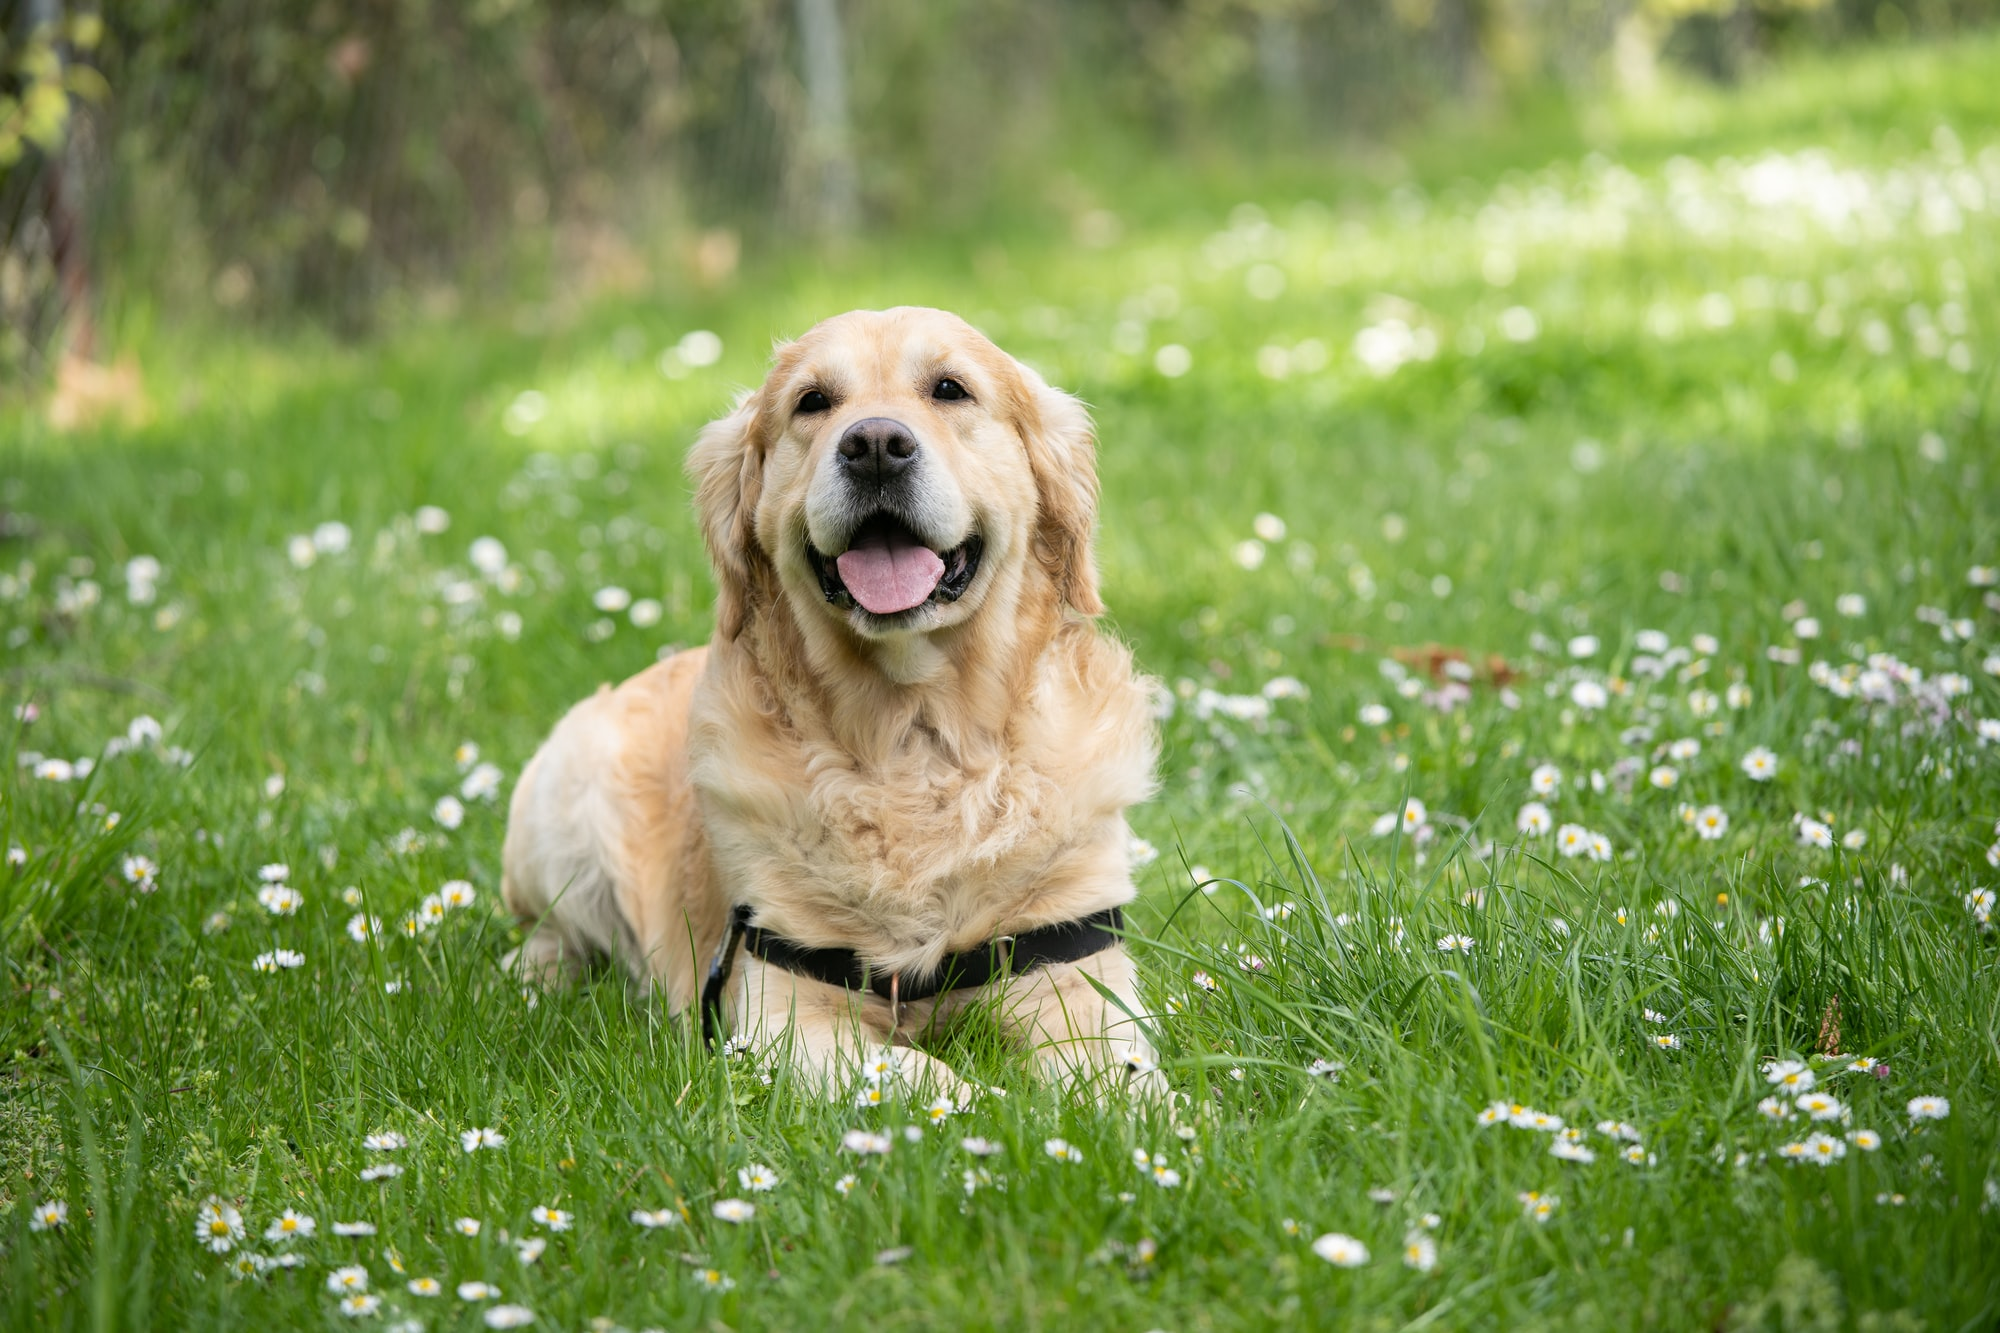 dog, dog names, dog in grass, golden retriever